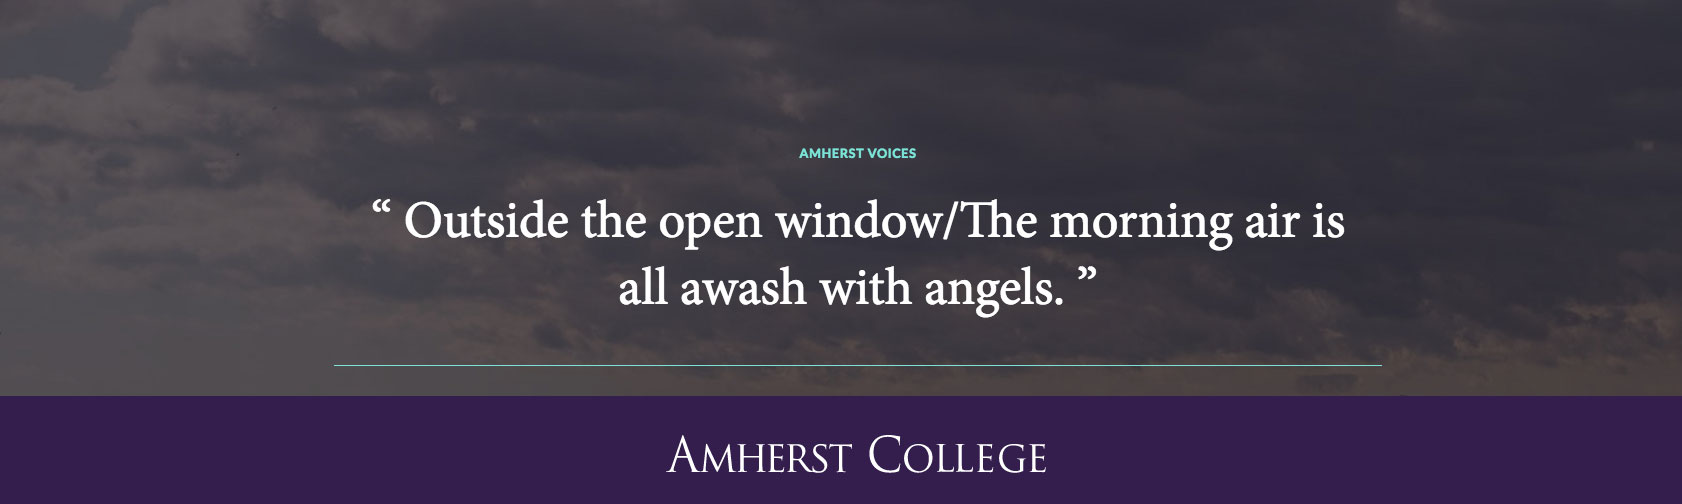 """Outside the open window/The morning air is all awash with angels."" Richard Wilbur '42"